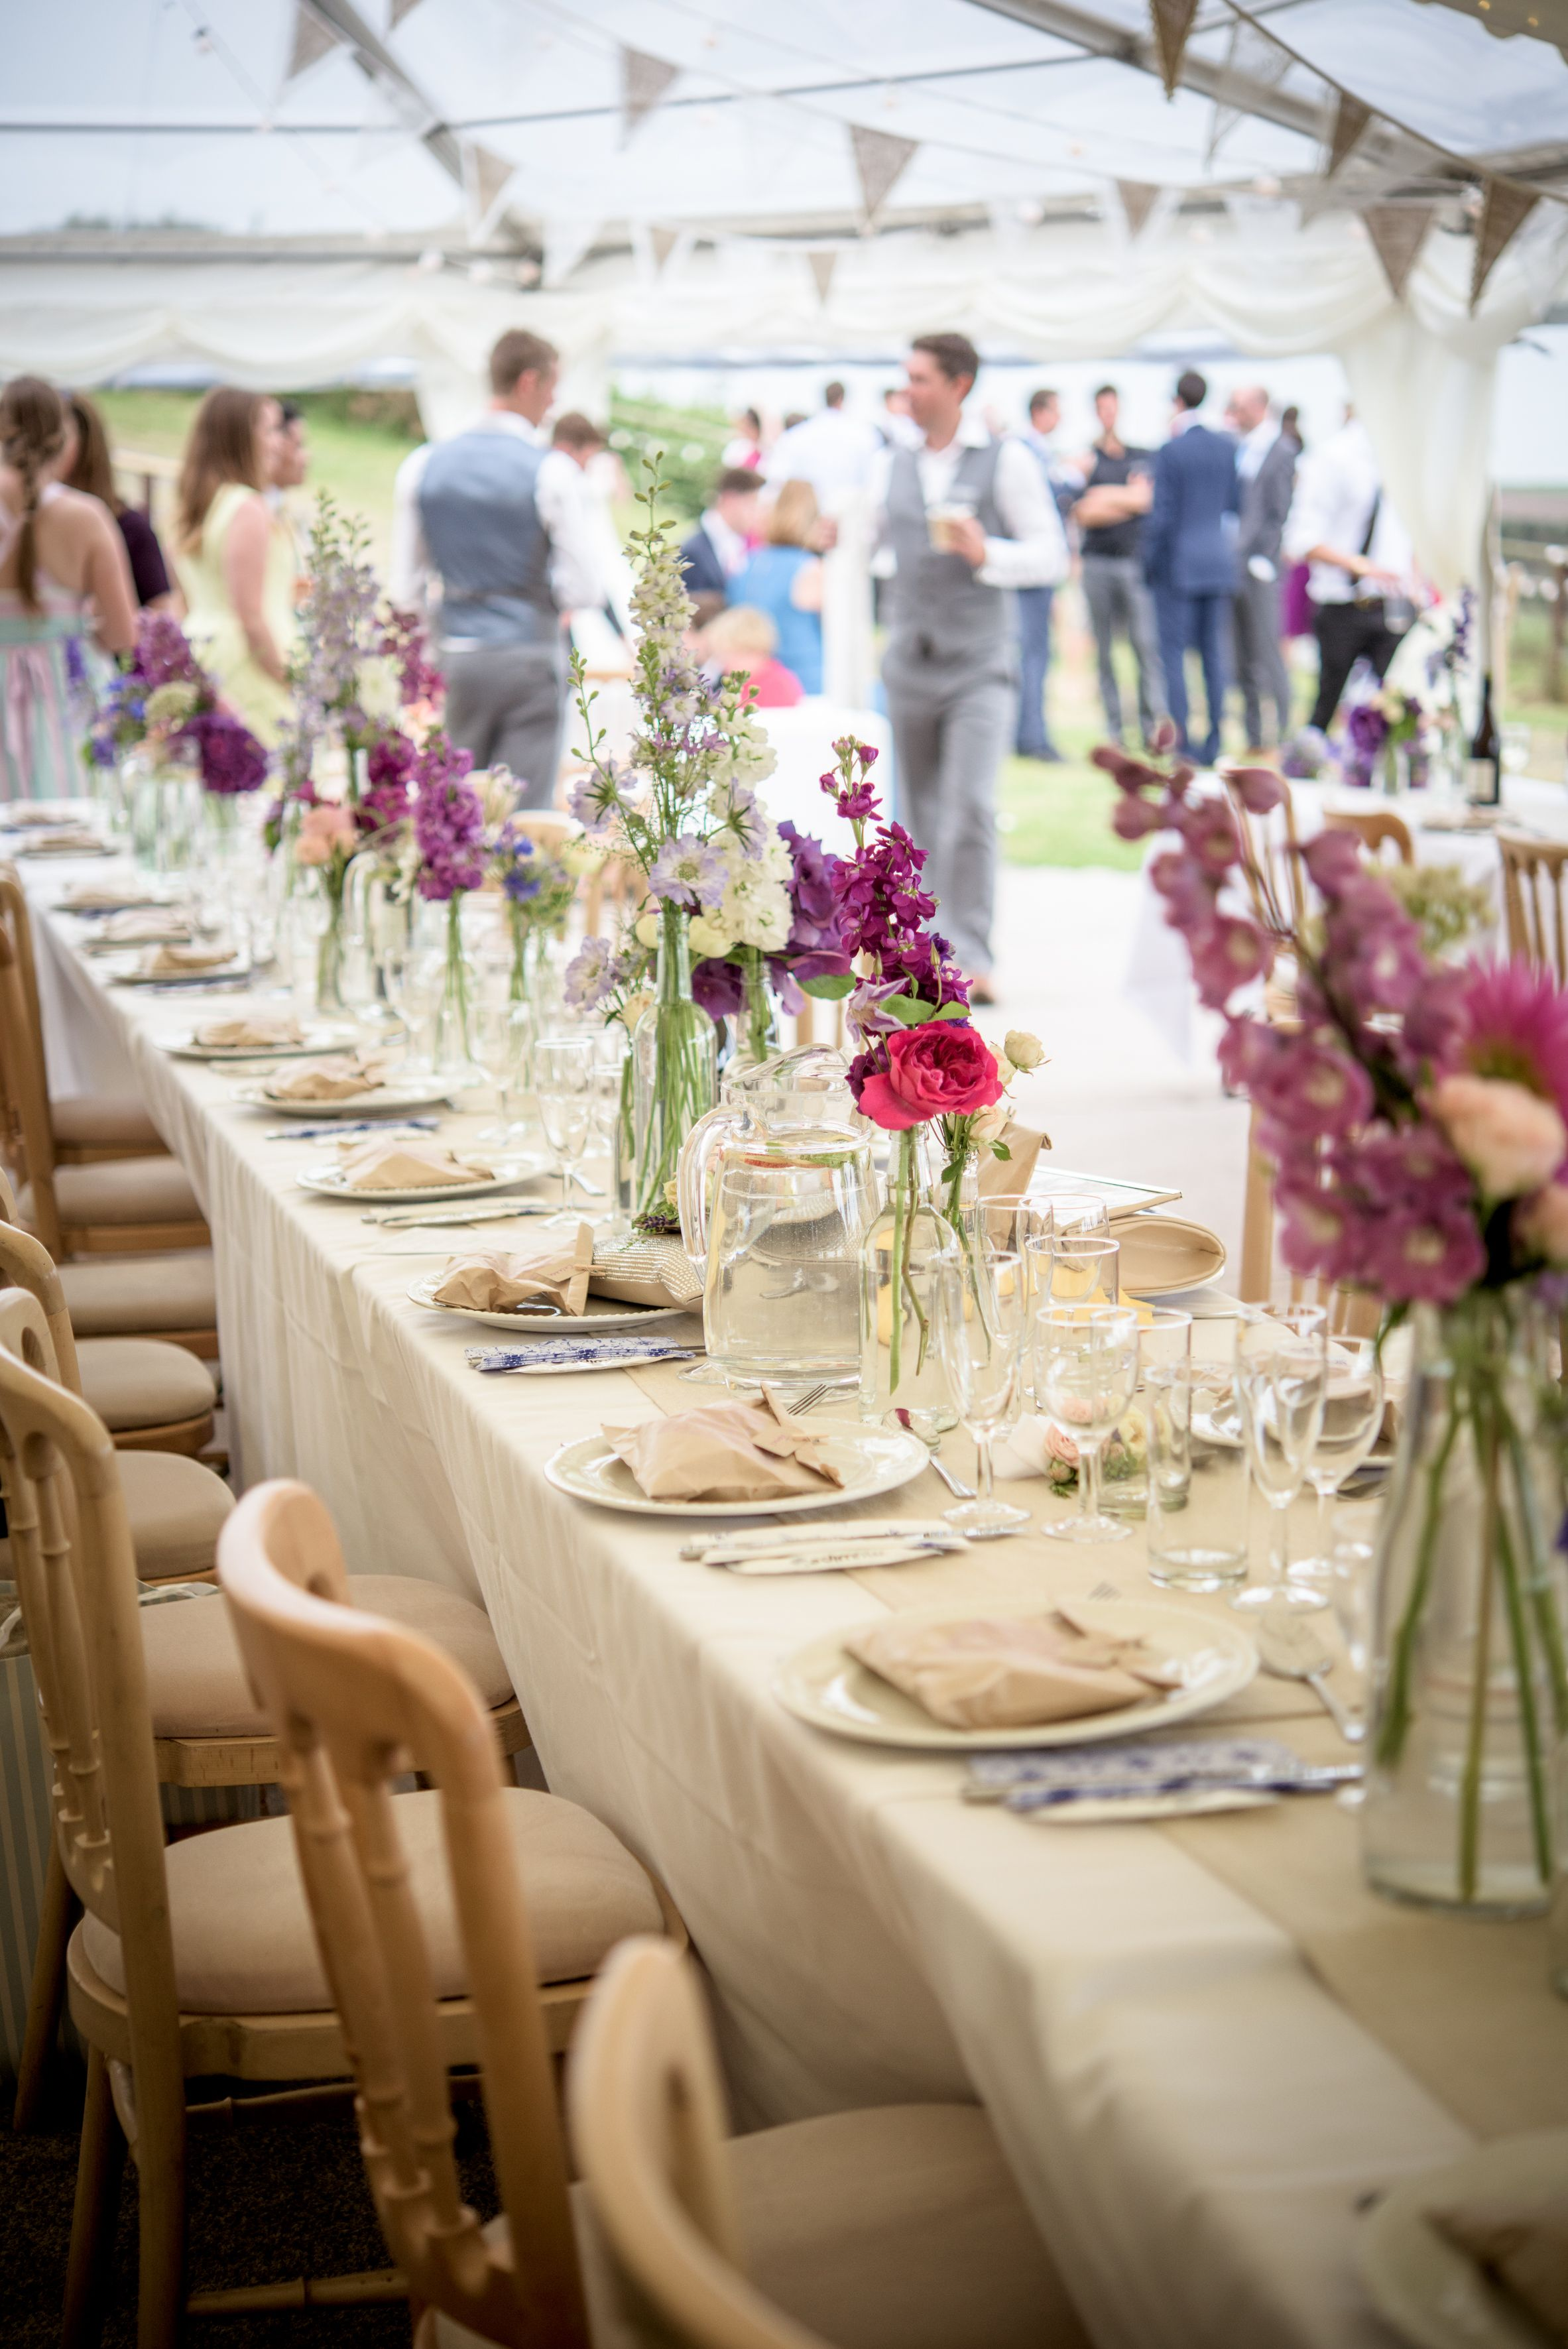 Wedding Chair Hire Algarve Poker Table And Chairs Beautiful Marquee With Country Flowers Decorating